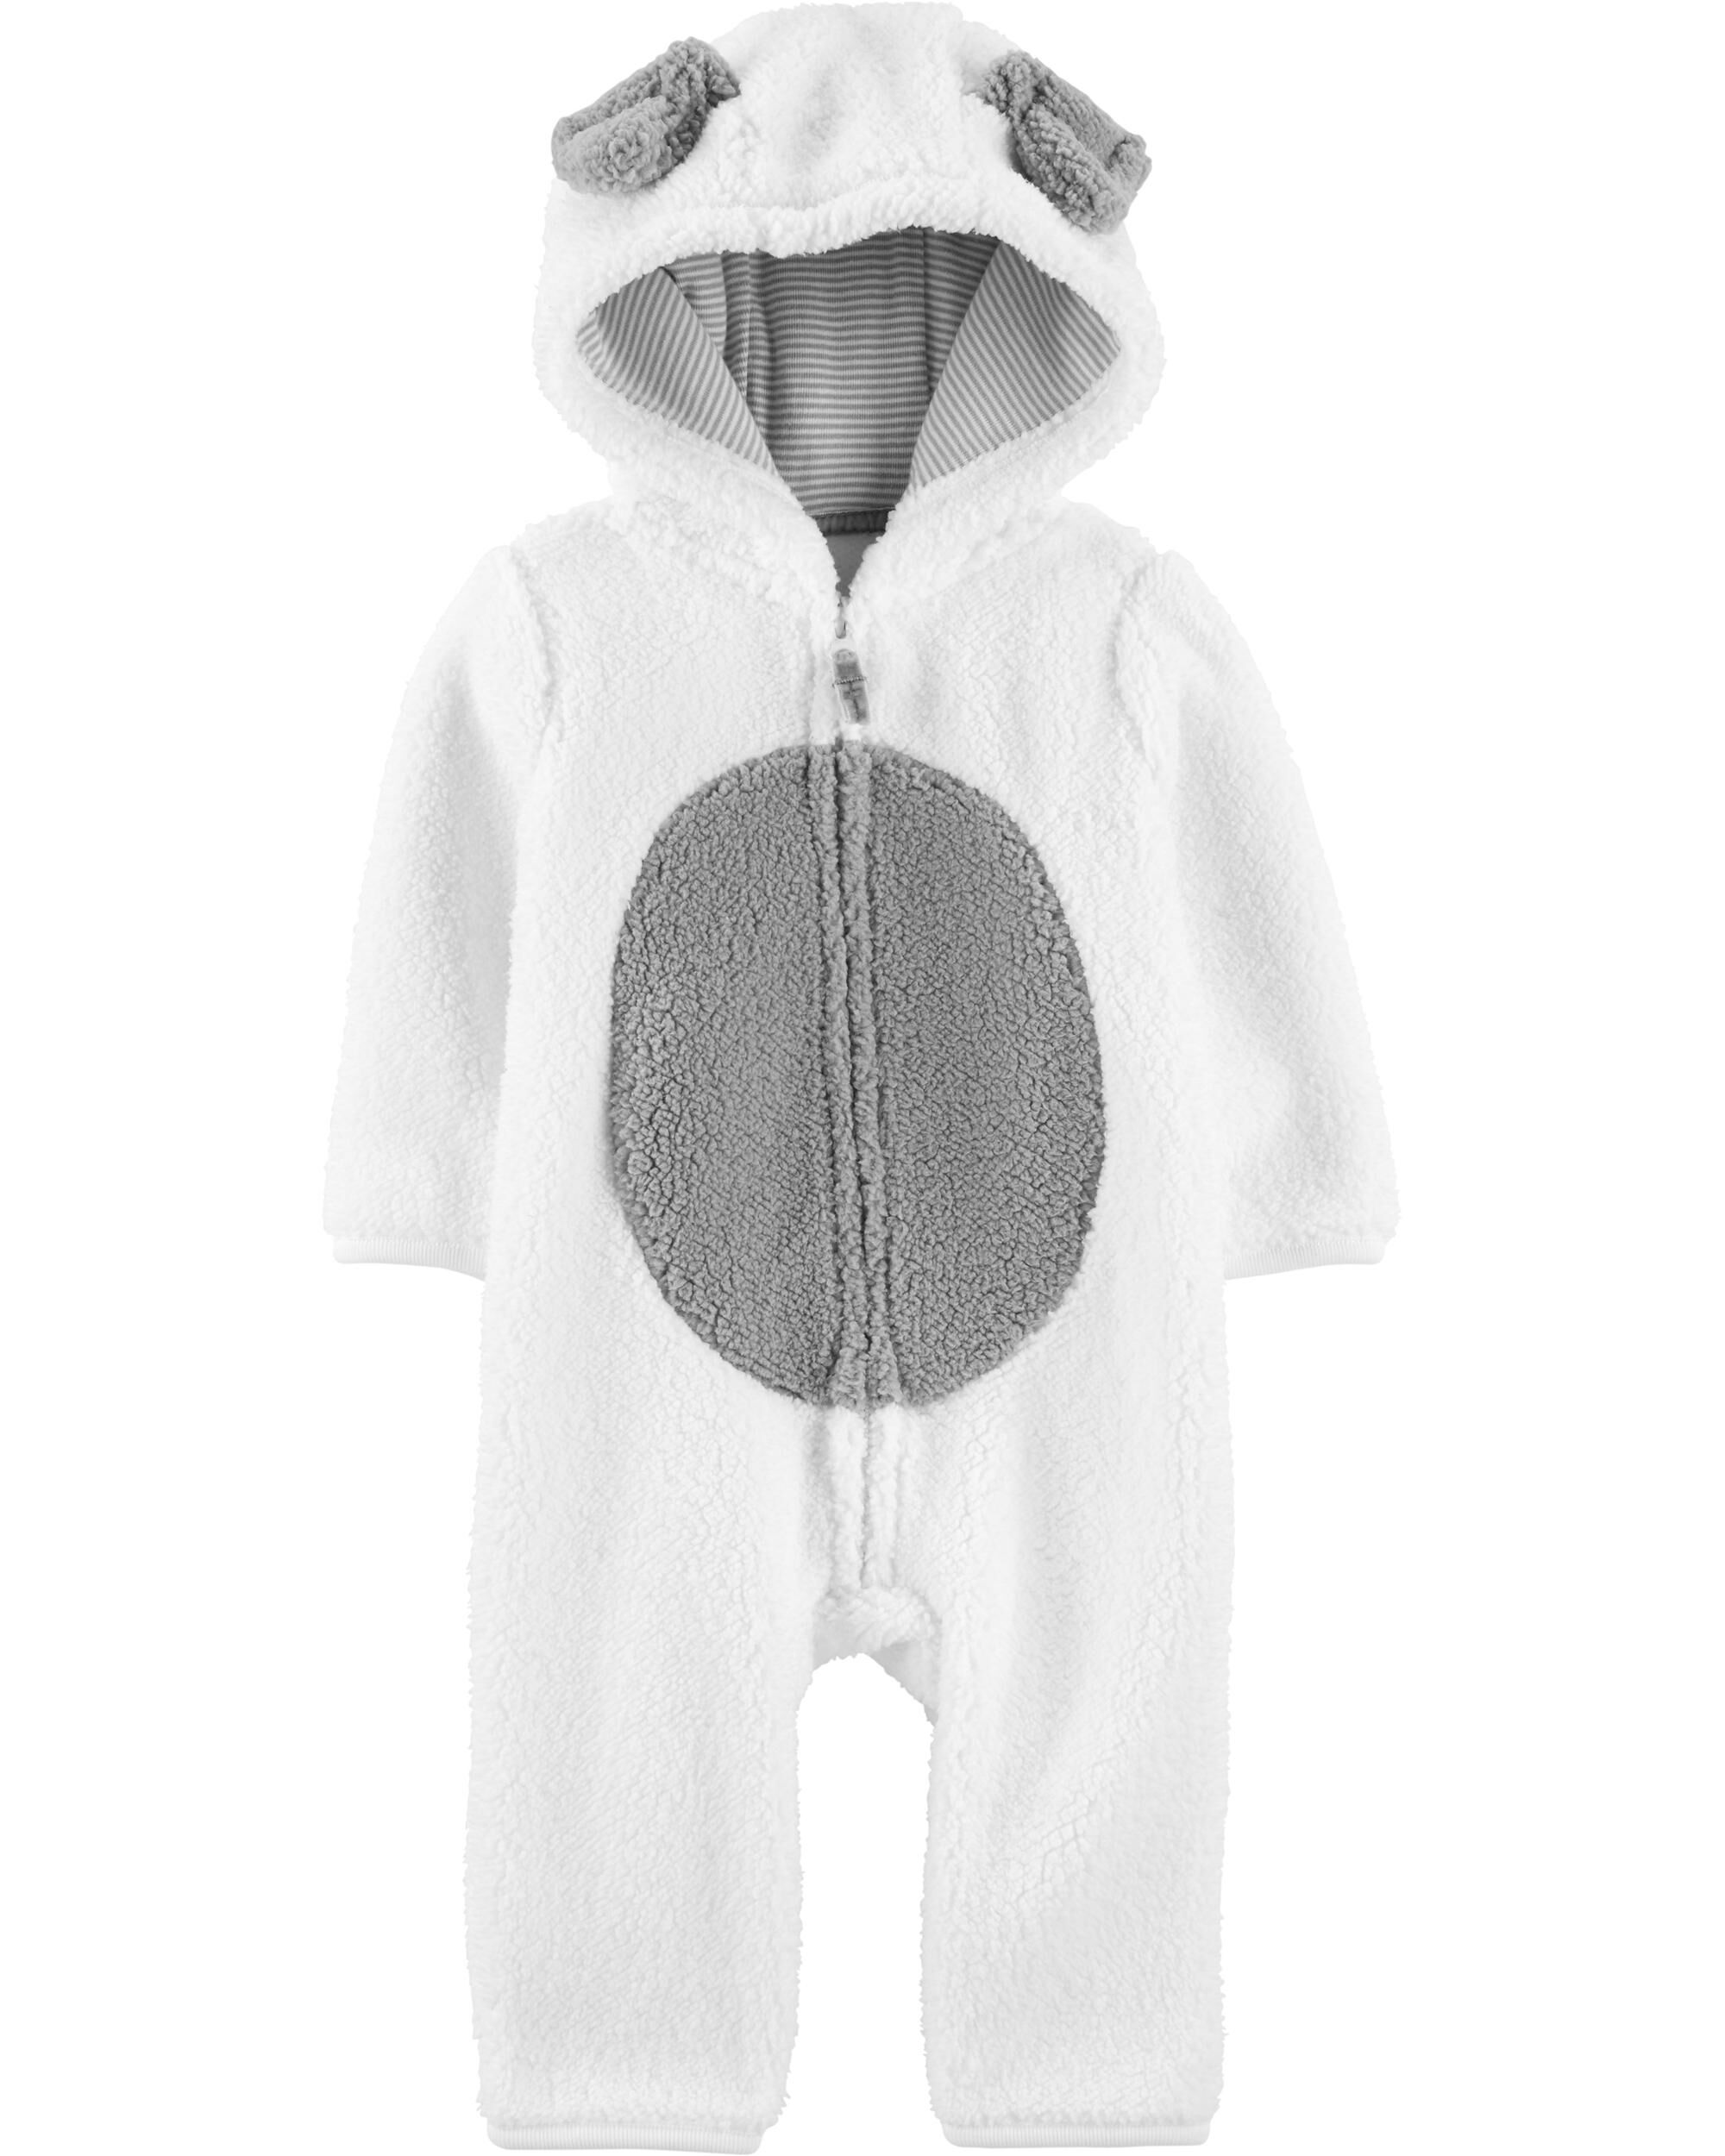 *CLEARANCE* Dog Hooded Sherpa Jumpsuit